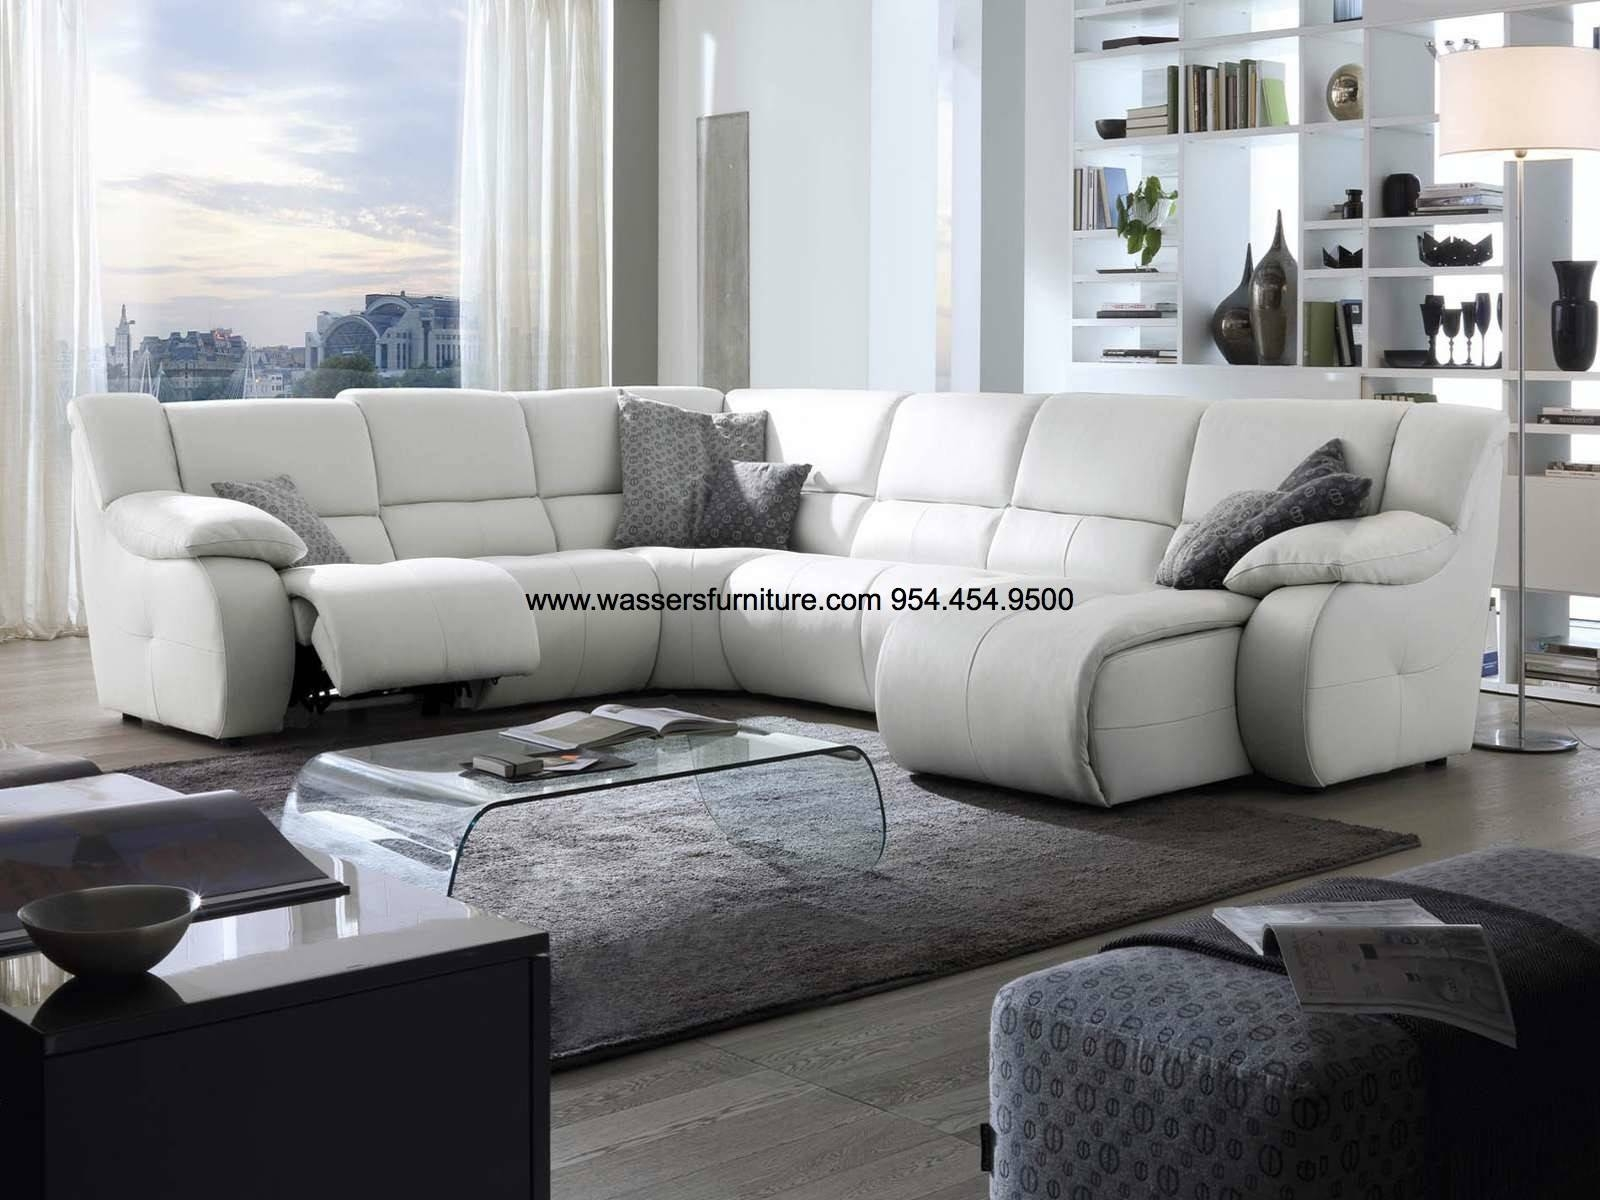 Pavoncello - Di Lusso - 6 Seat - Genuine Leather All Over - Motion for Motion Sectional Sofas (Image 17 of 30)